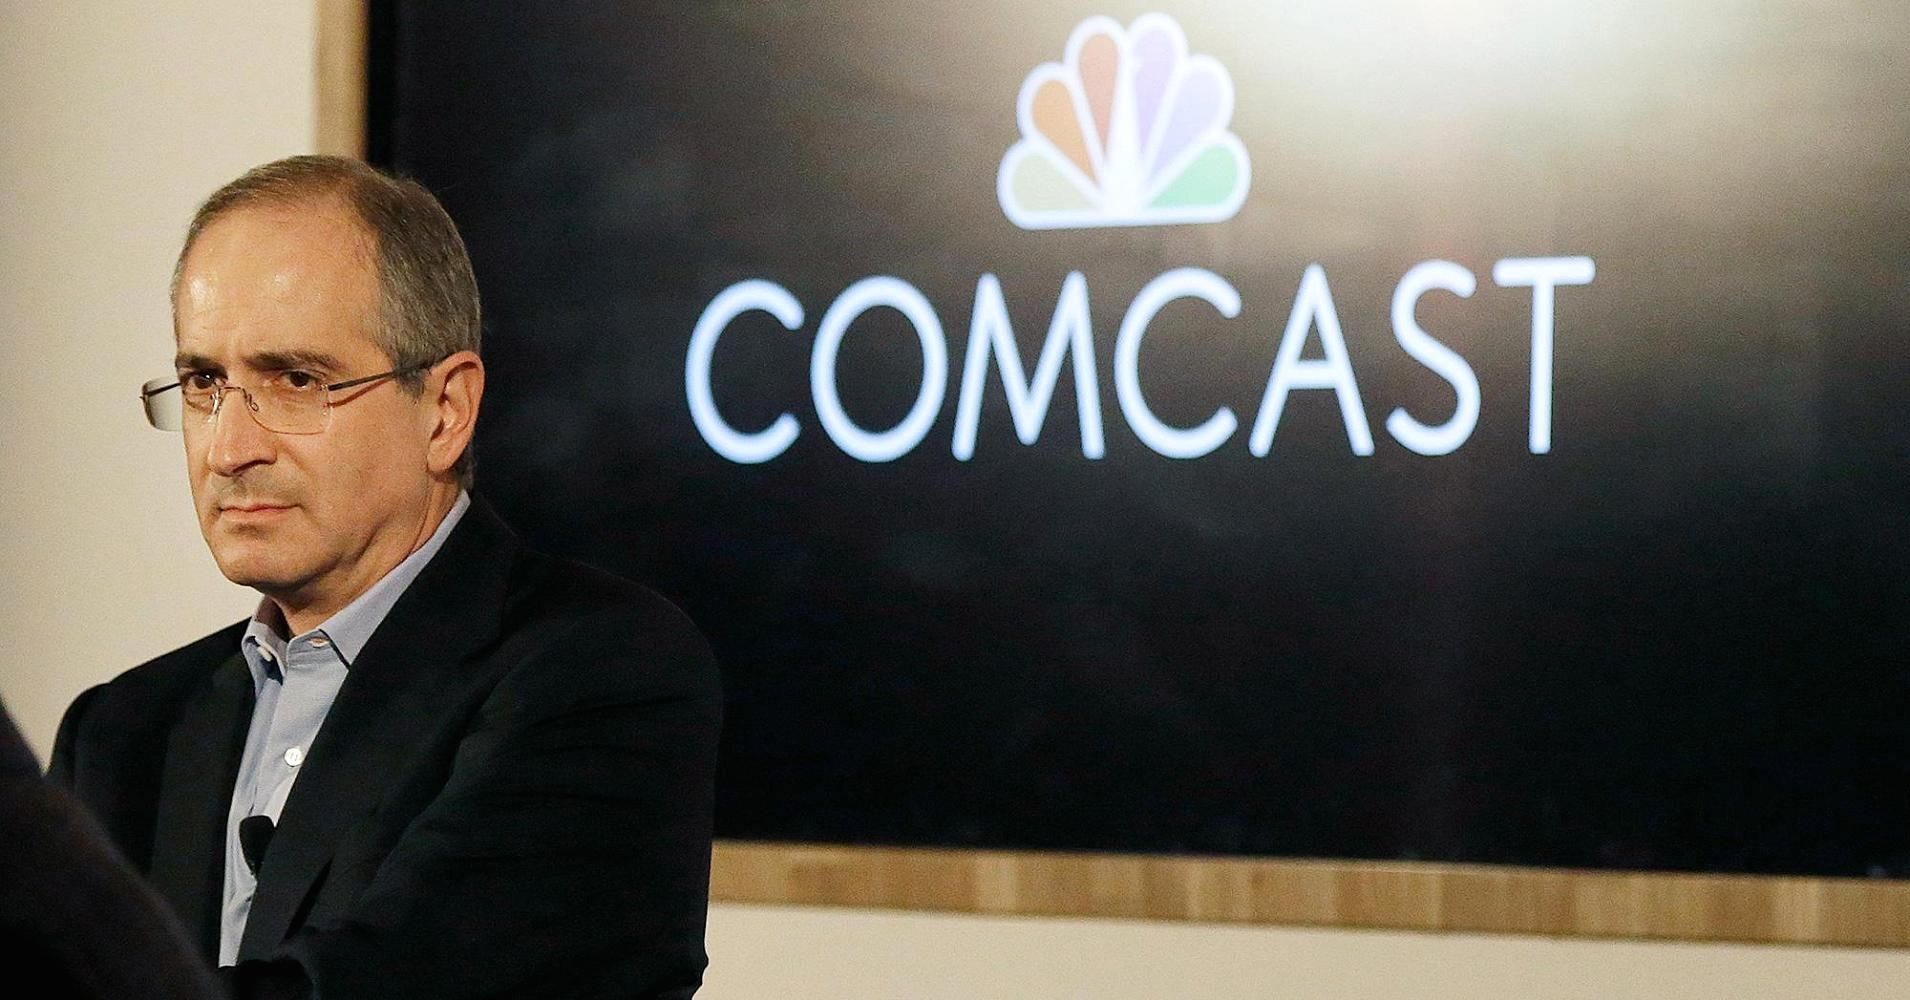 Driving The Deal Comcast Give Was Larger But Fox Favored Disney